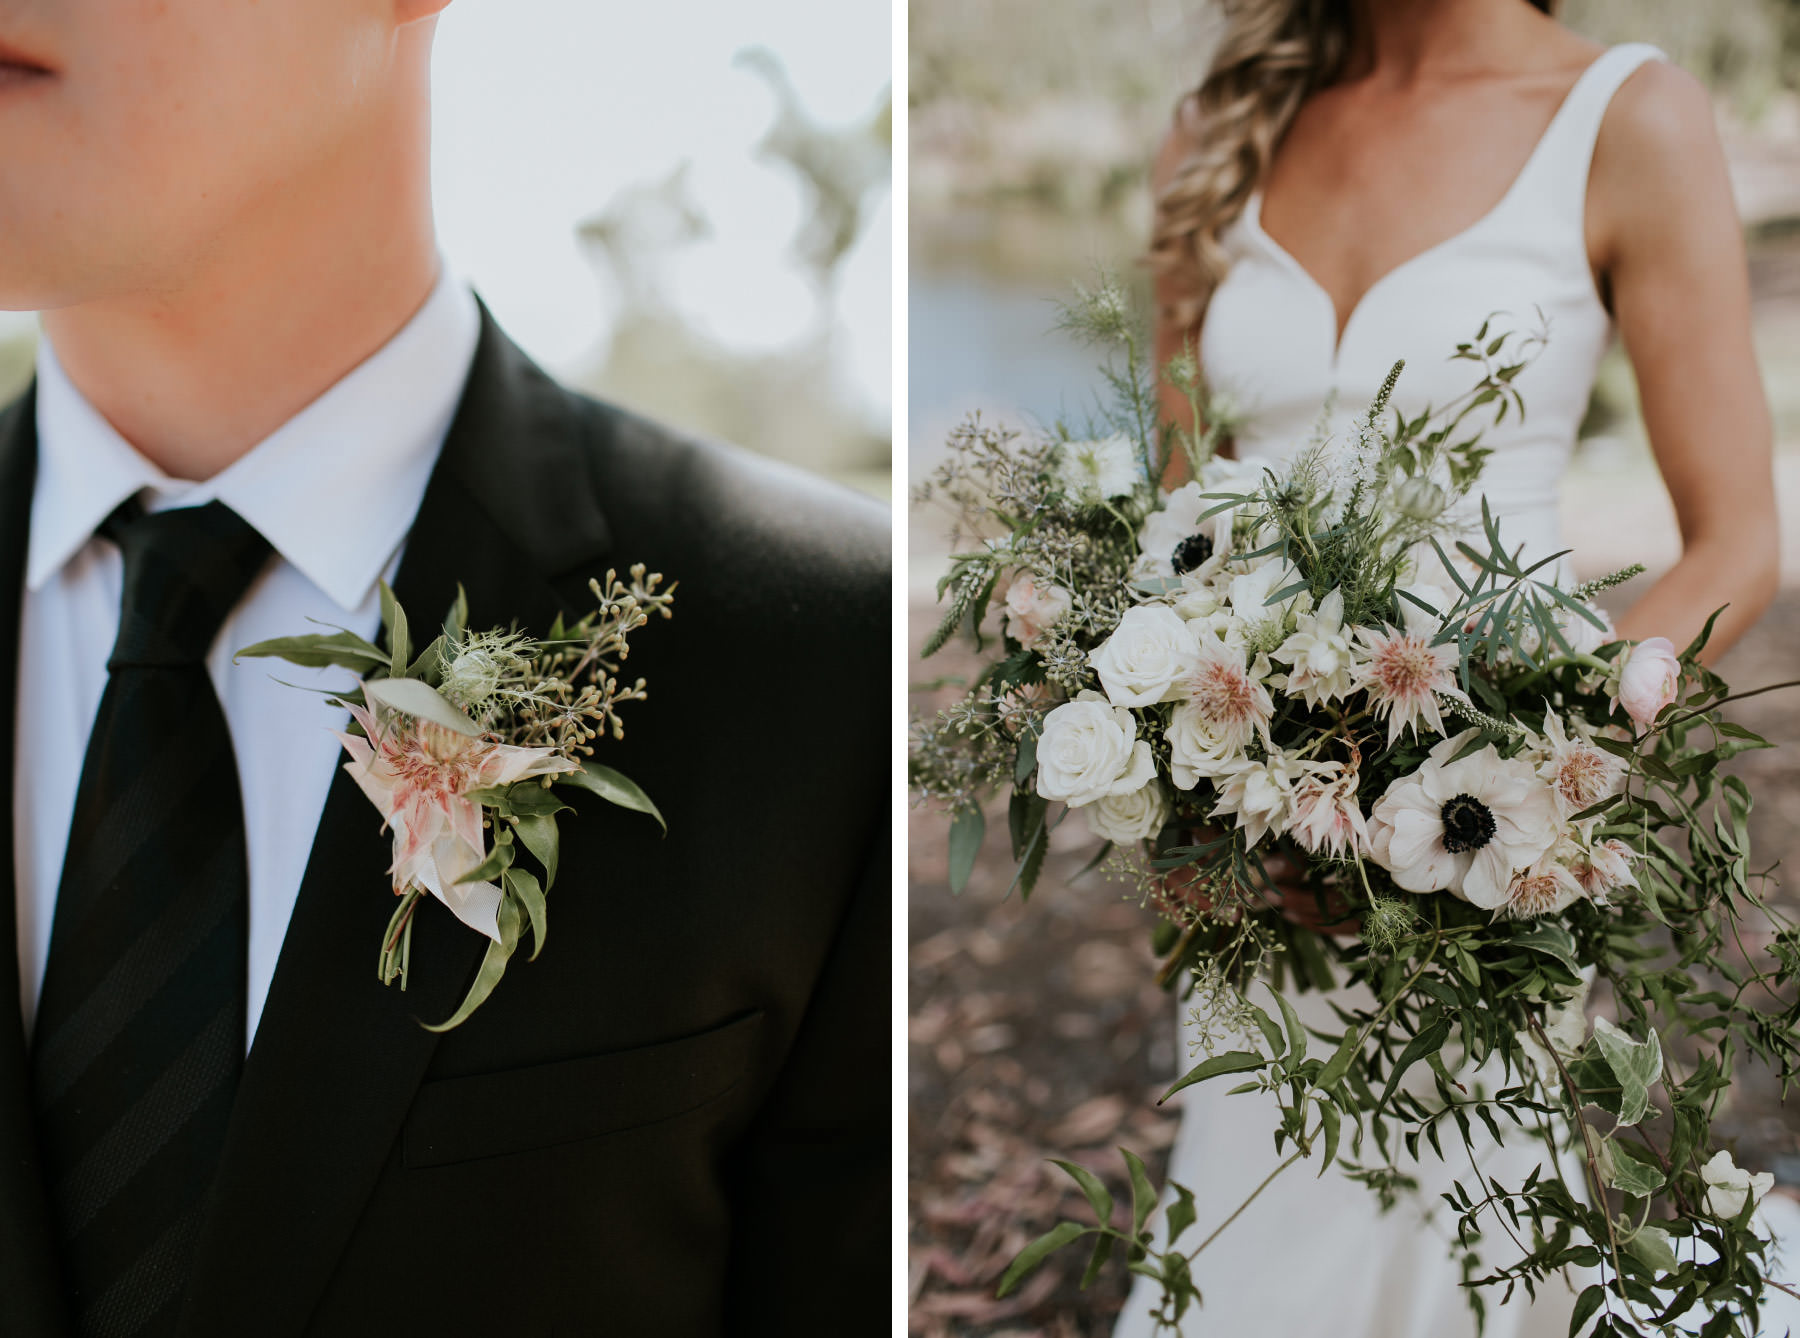 Cascading bouquet and boutonniere with white anemone flowers